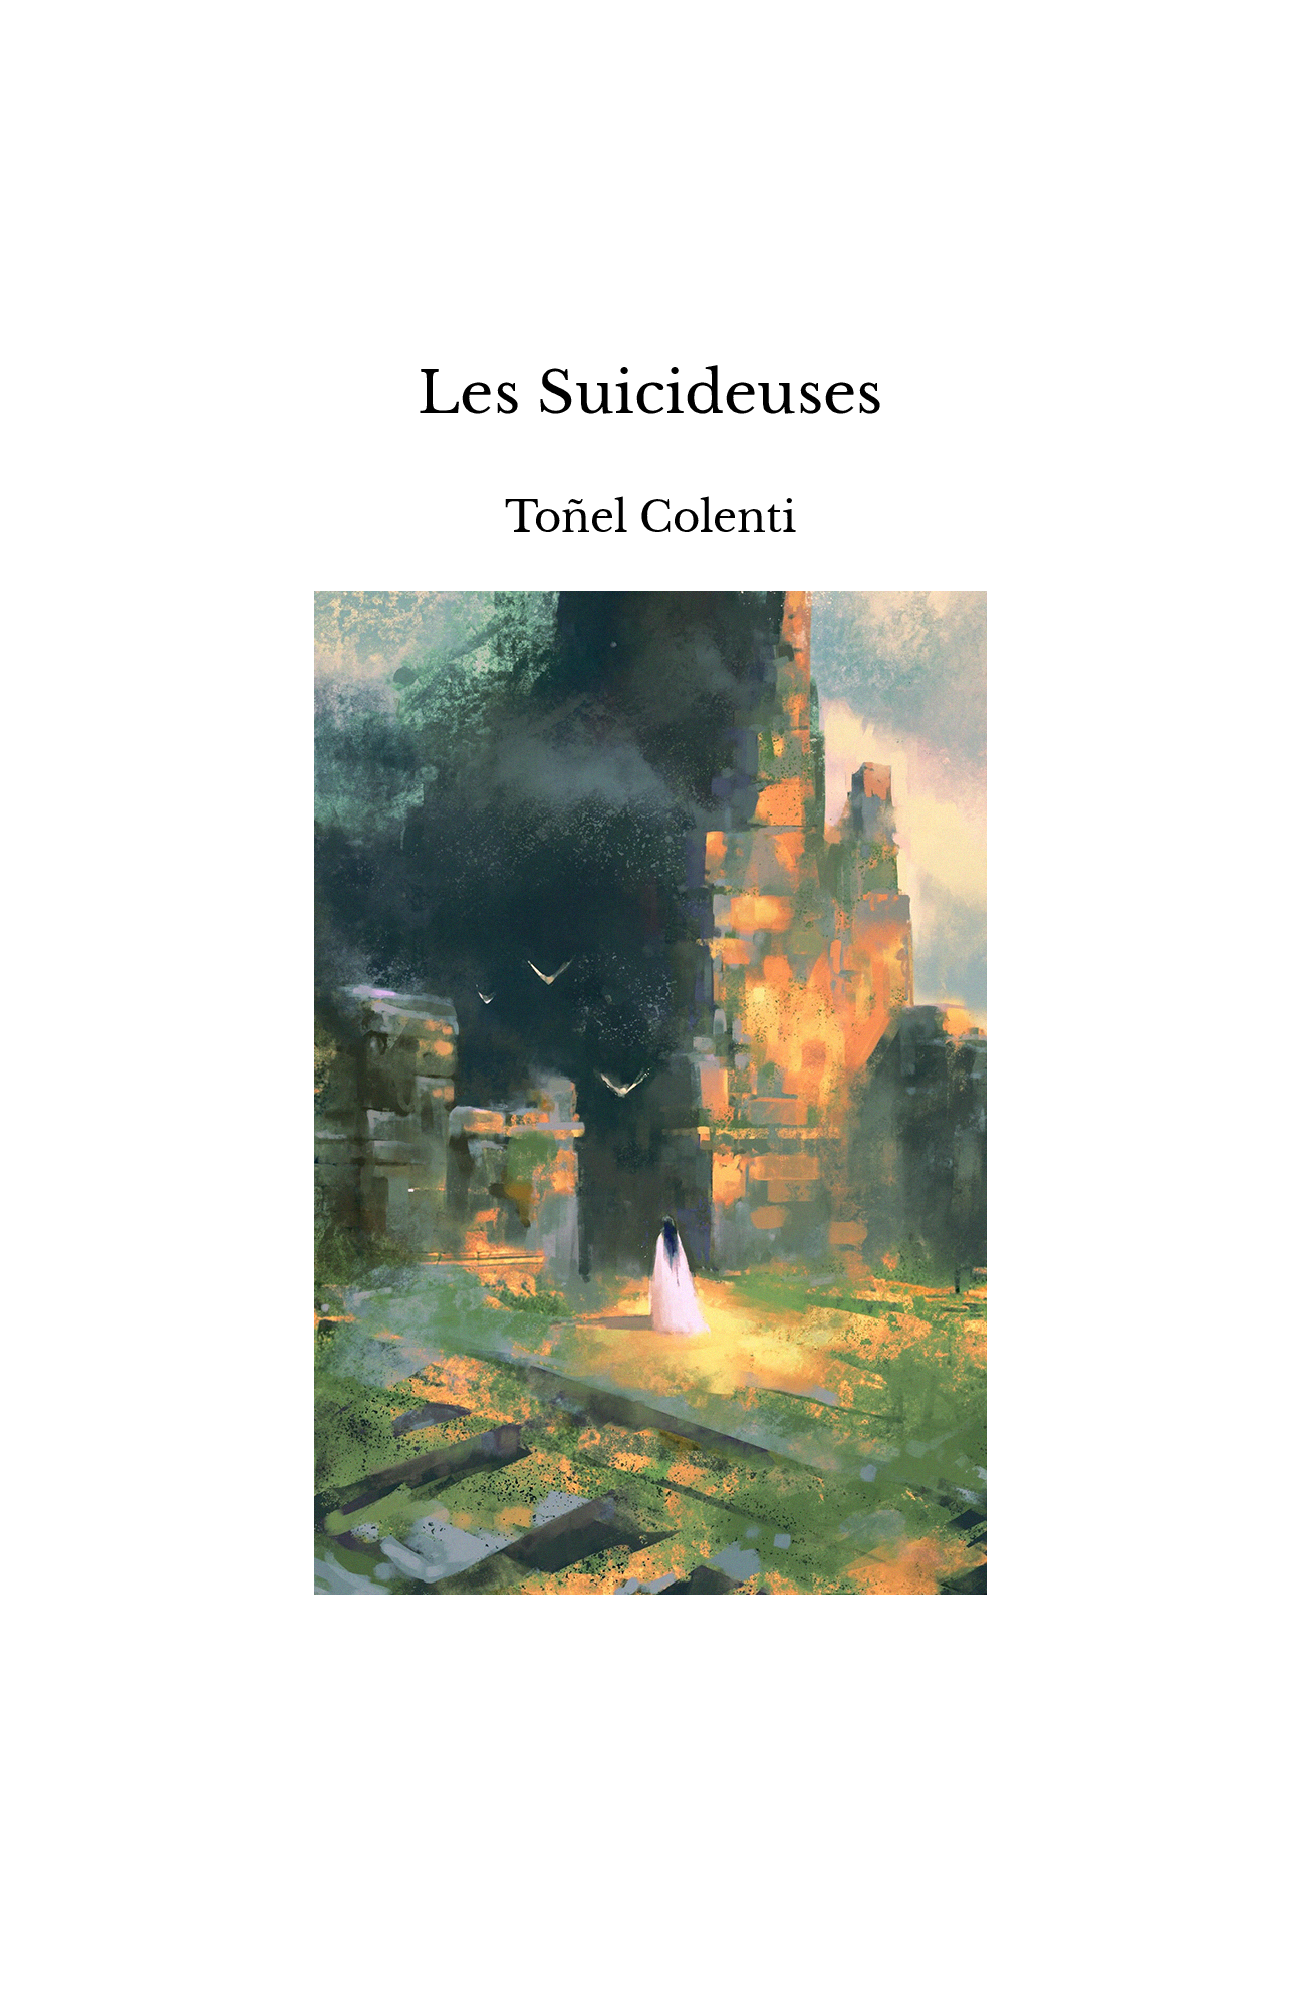 Les Suicideuses